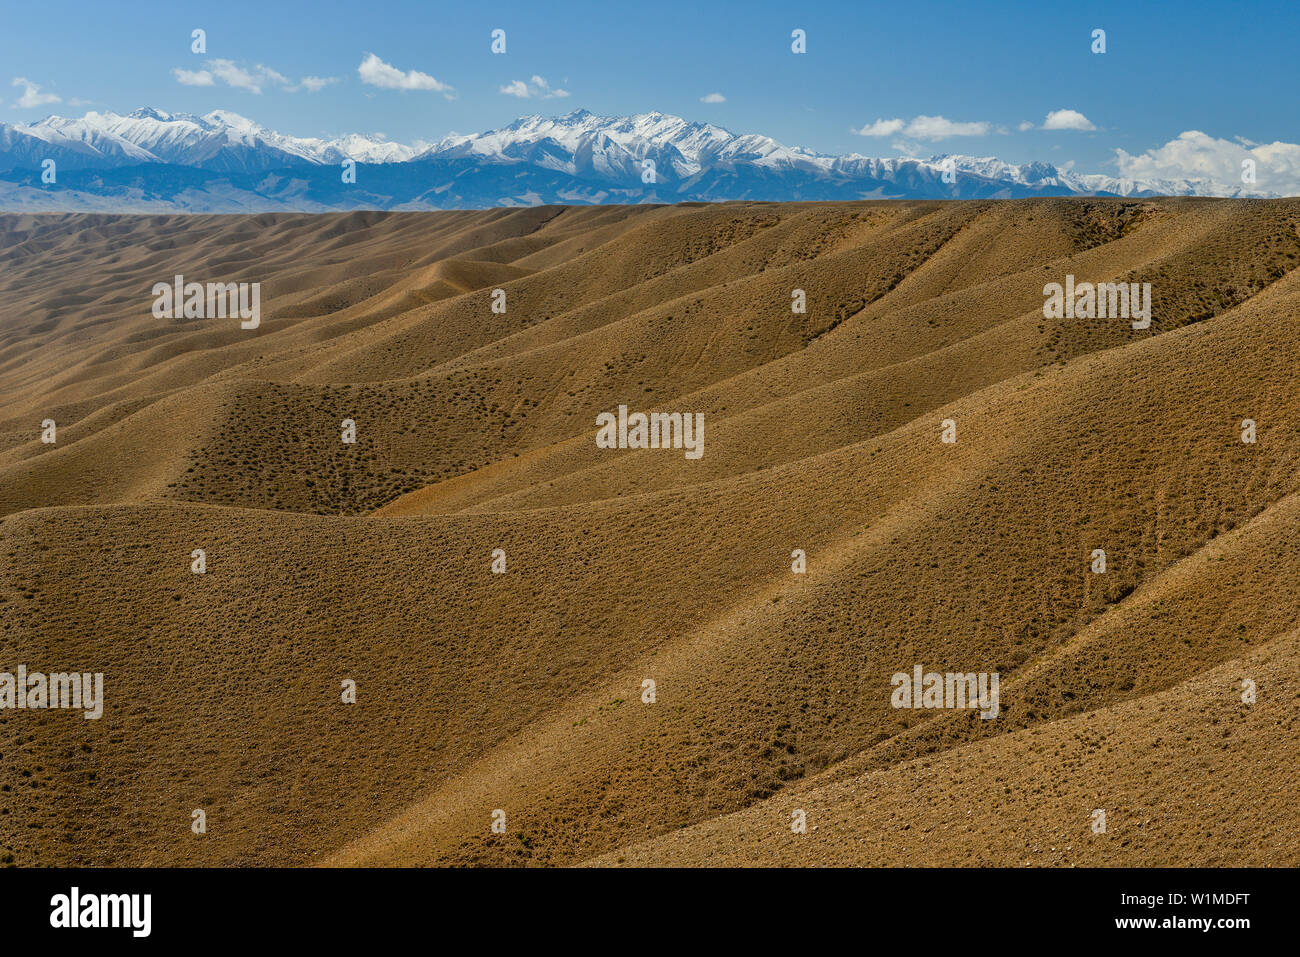 Desert landscape with boulders mountains, snow-covered Tien Shan mountains in the background, Kolsay Lakes National Park, Tien Shan Mountains, Tian Sh Stock Photo